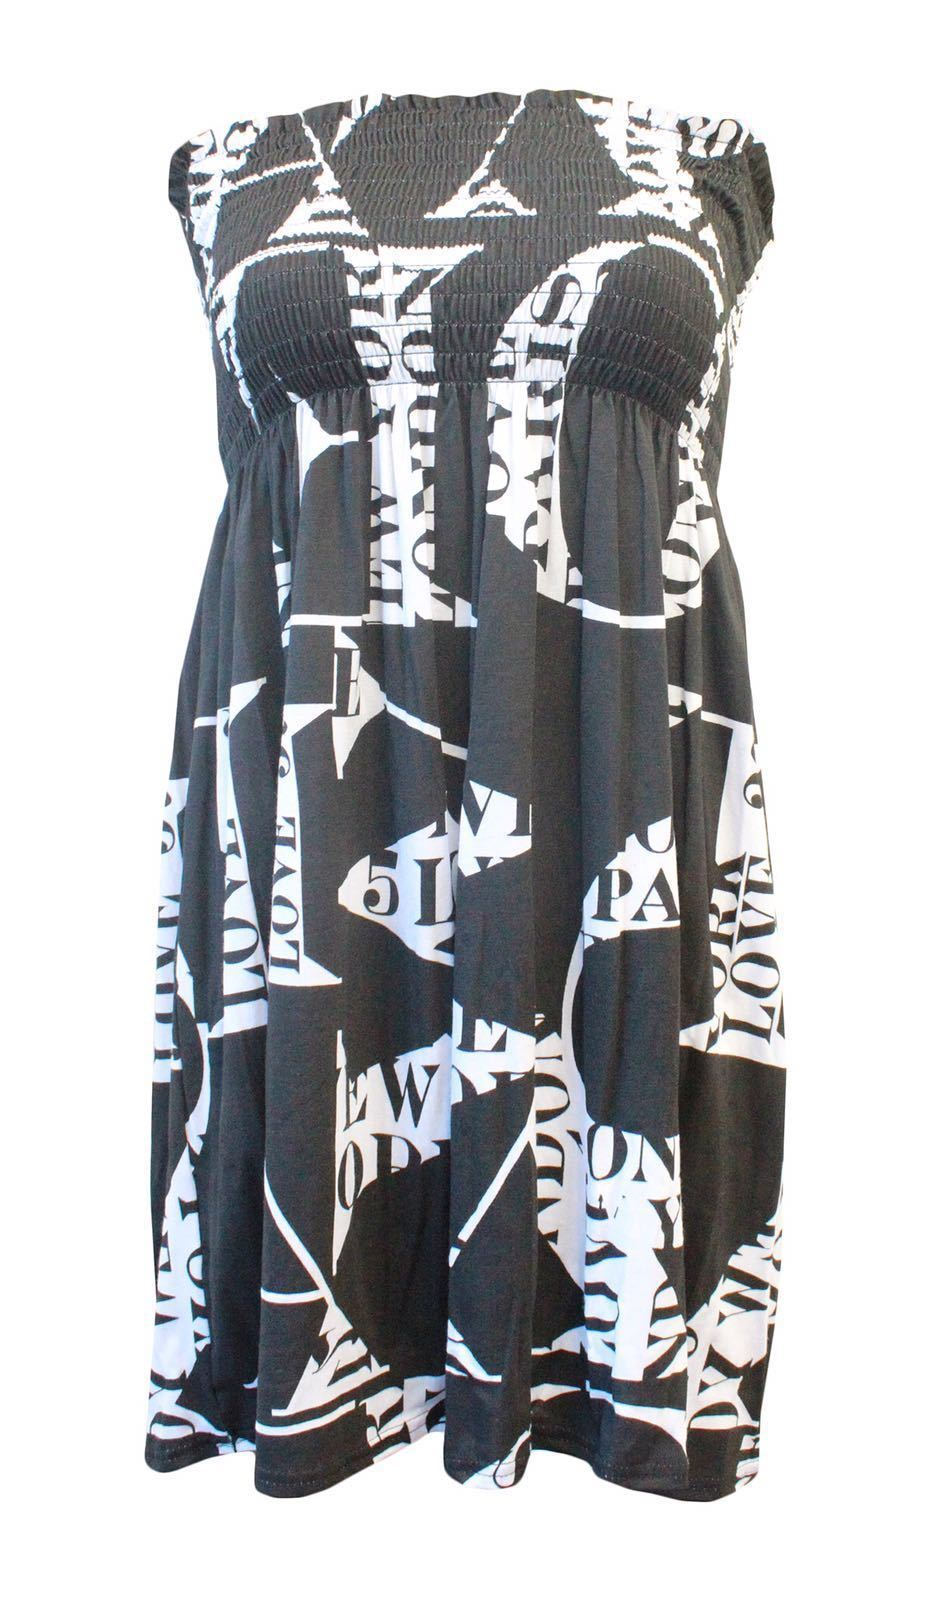 Ladies-Printed-Sheering-Bandeau-Boobtube-Strapless-Flared-Ruched-Mini-Dress-Top